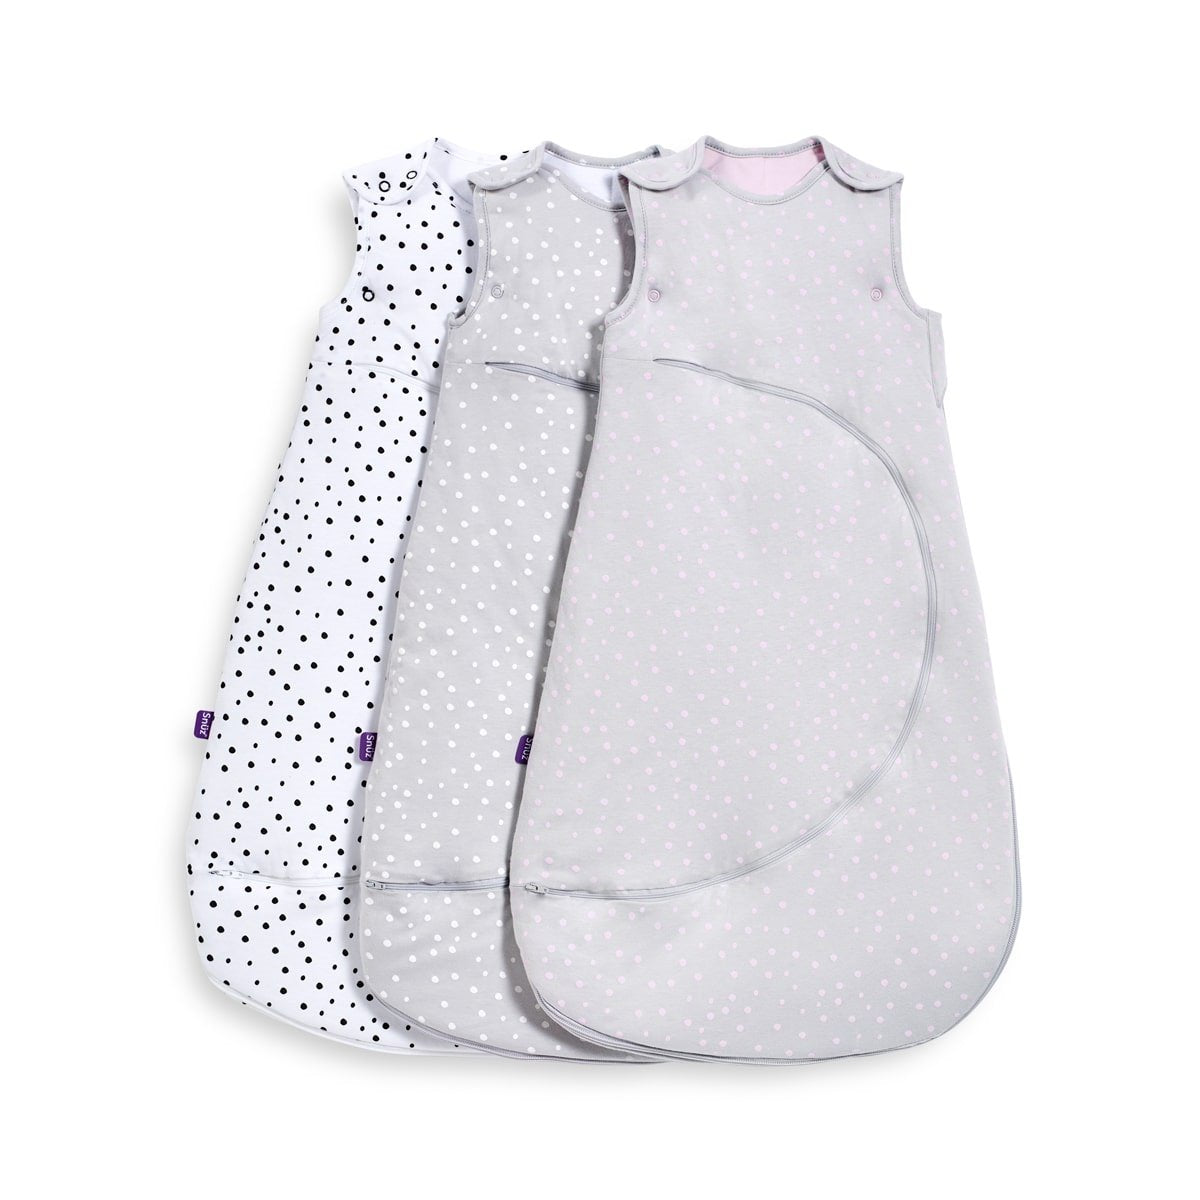 SnuzPouch Sleeping Bag - Rose Spots